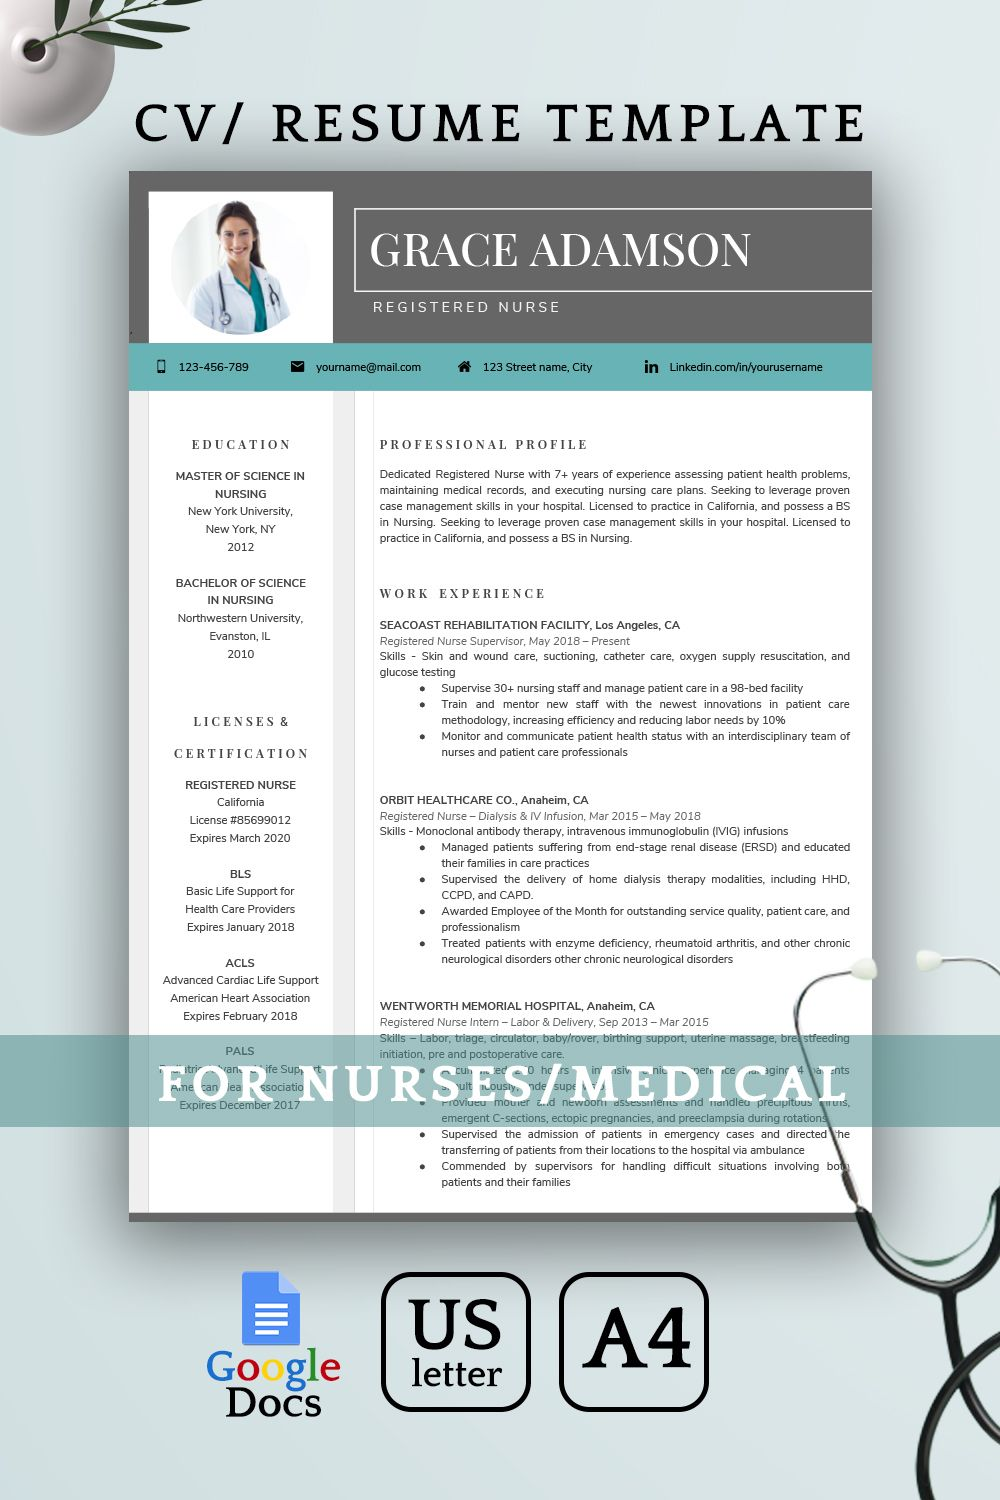 Google Docs Resume Template, Nurse Resume Template